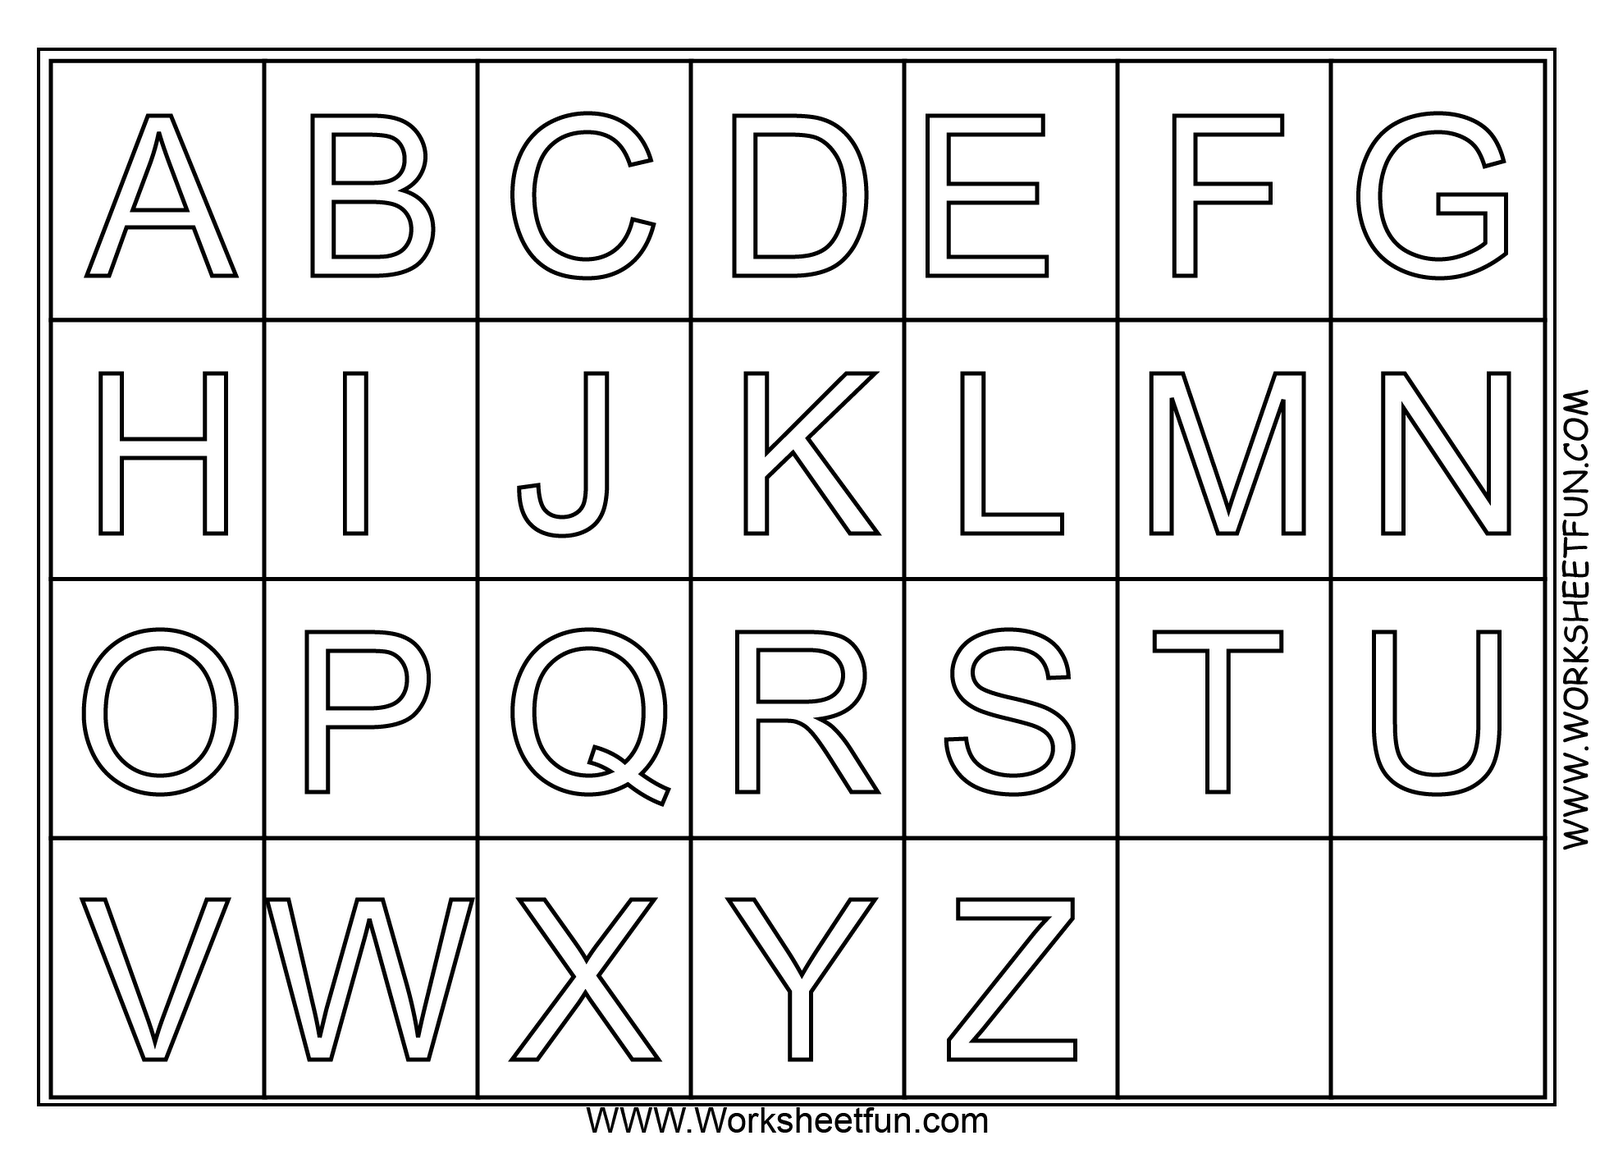 Worksheets Preschool Letter Worksheets a z alphabet coloring pages download and print for free pre k to worksheet letters worksheets preschool